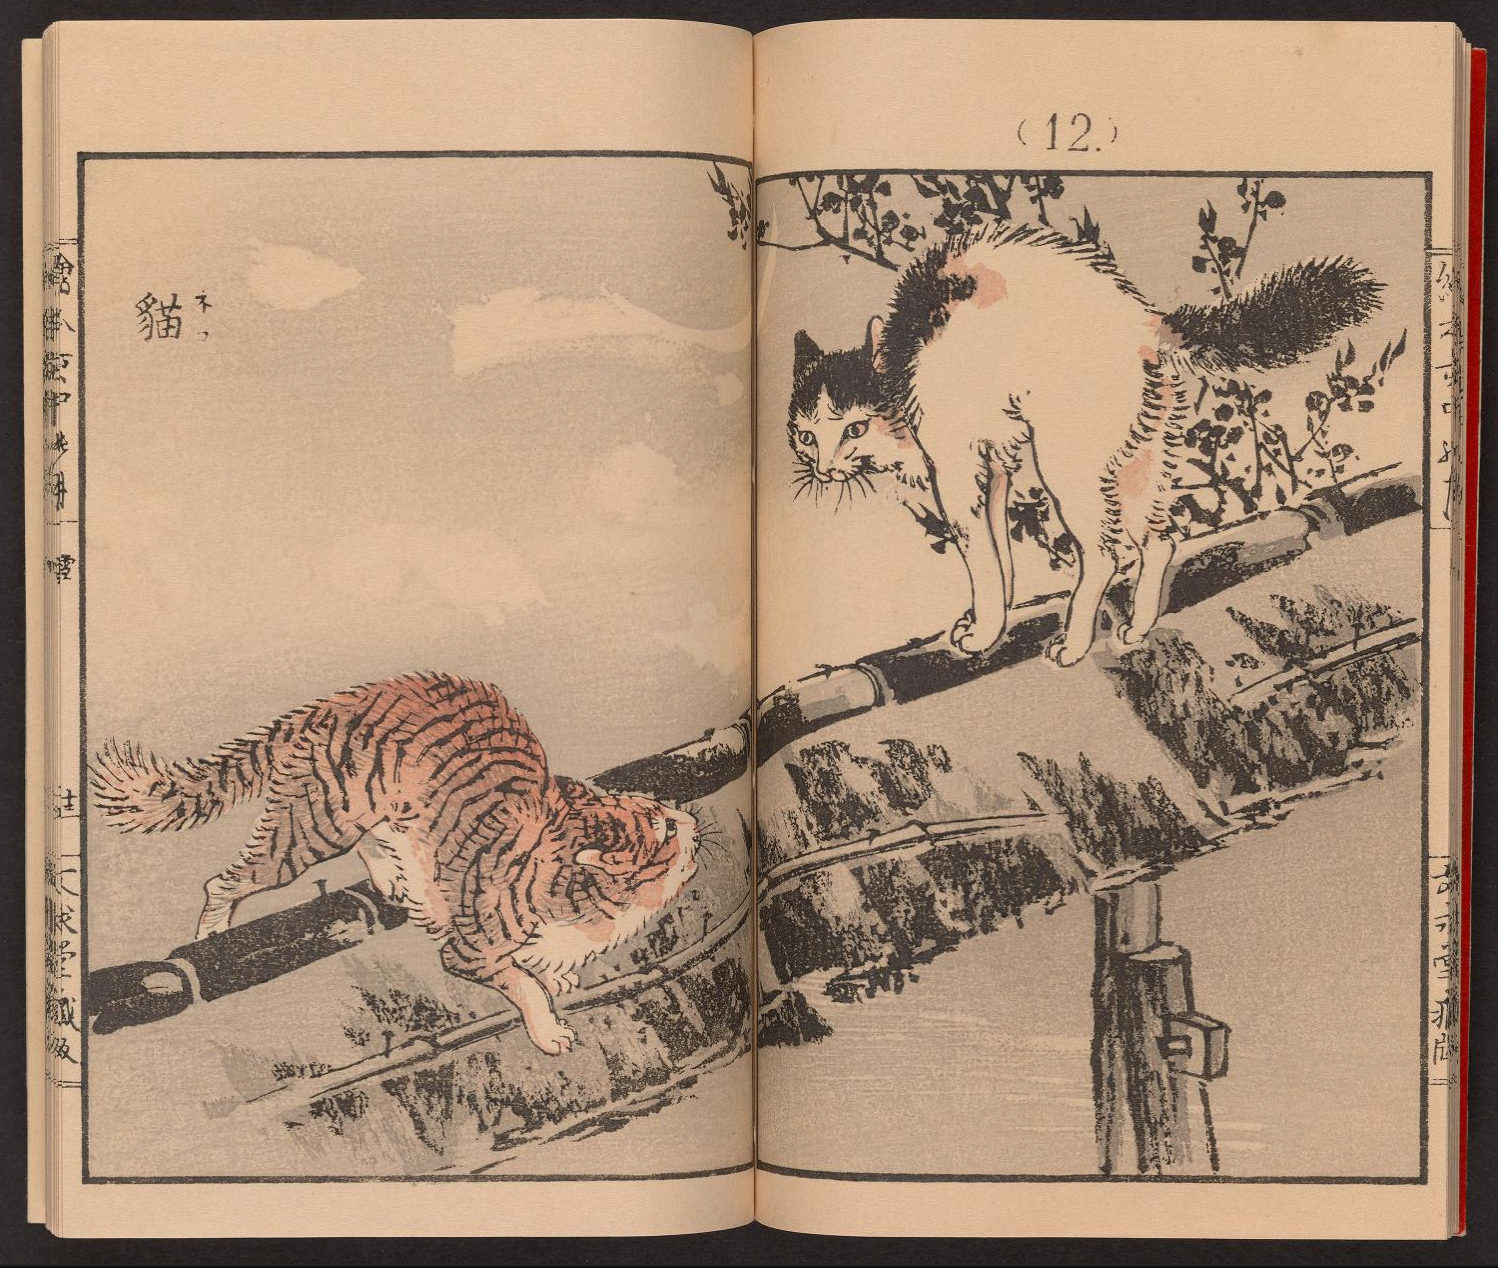 Two pages showing a white and black cat alarmed by a calico cat on a rooftop. from artist Kōno Bairei's 1889 publication, Inaka no tsuki. This volume includes color woodcut prints of animals, birds, fishes, plants, and trees.